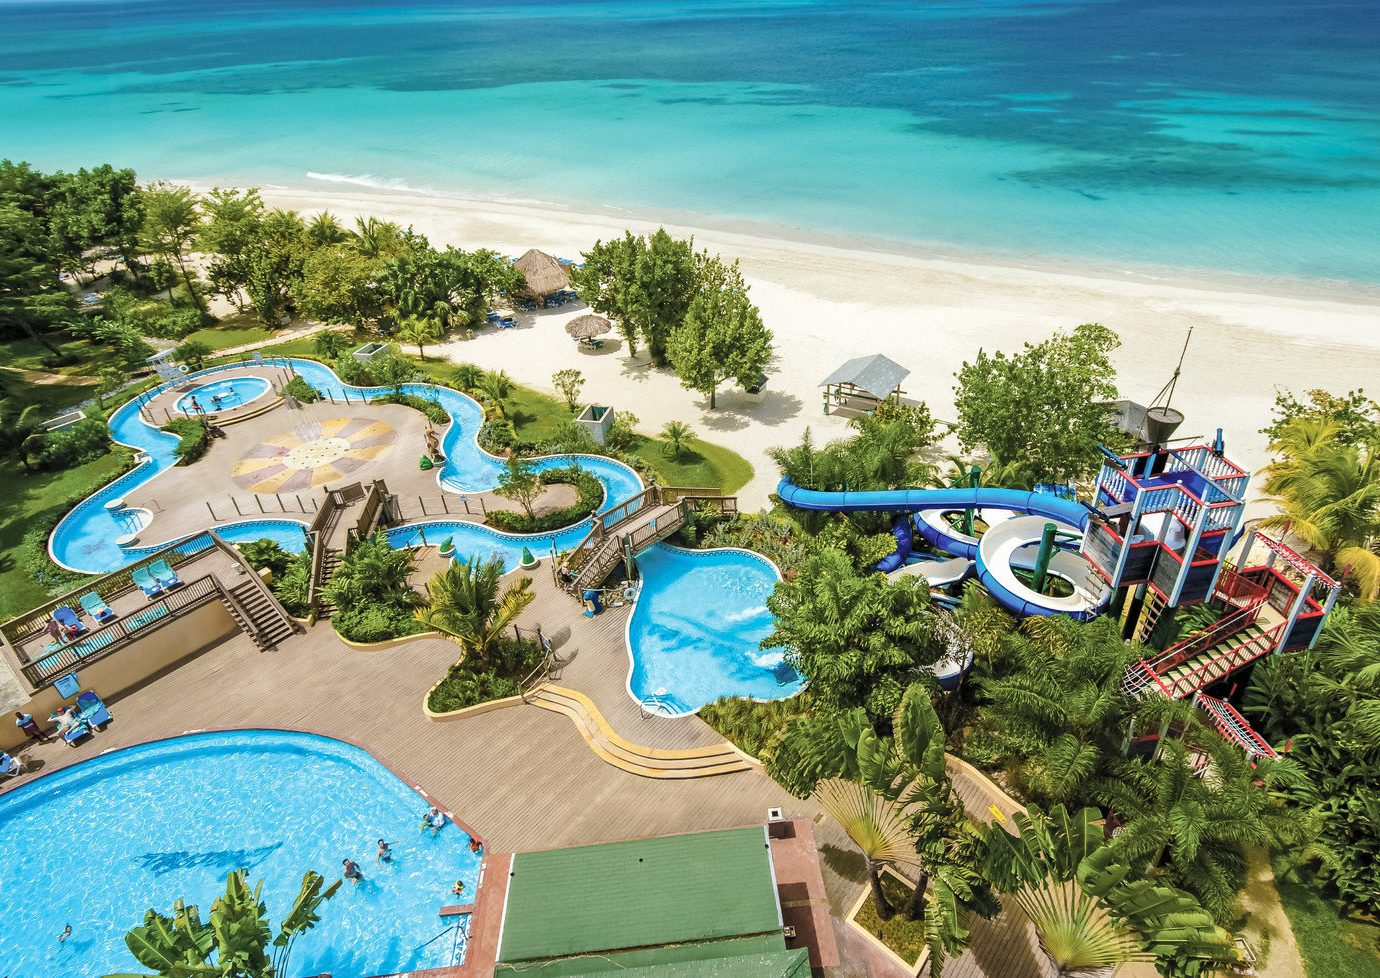 All Inclusive Resort 10 Best All Inclusive Resorts In The Caribbean For Families